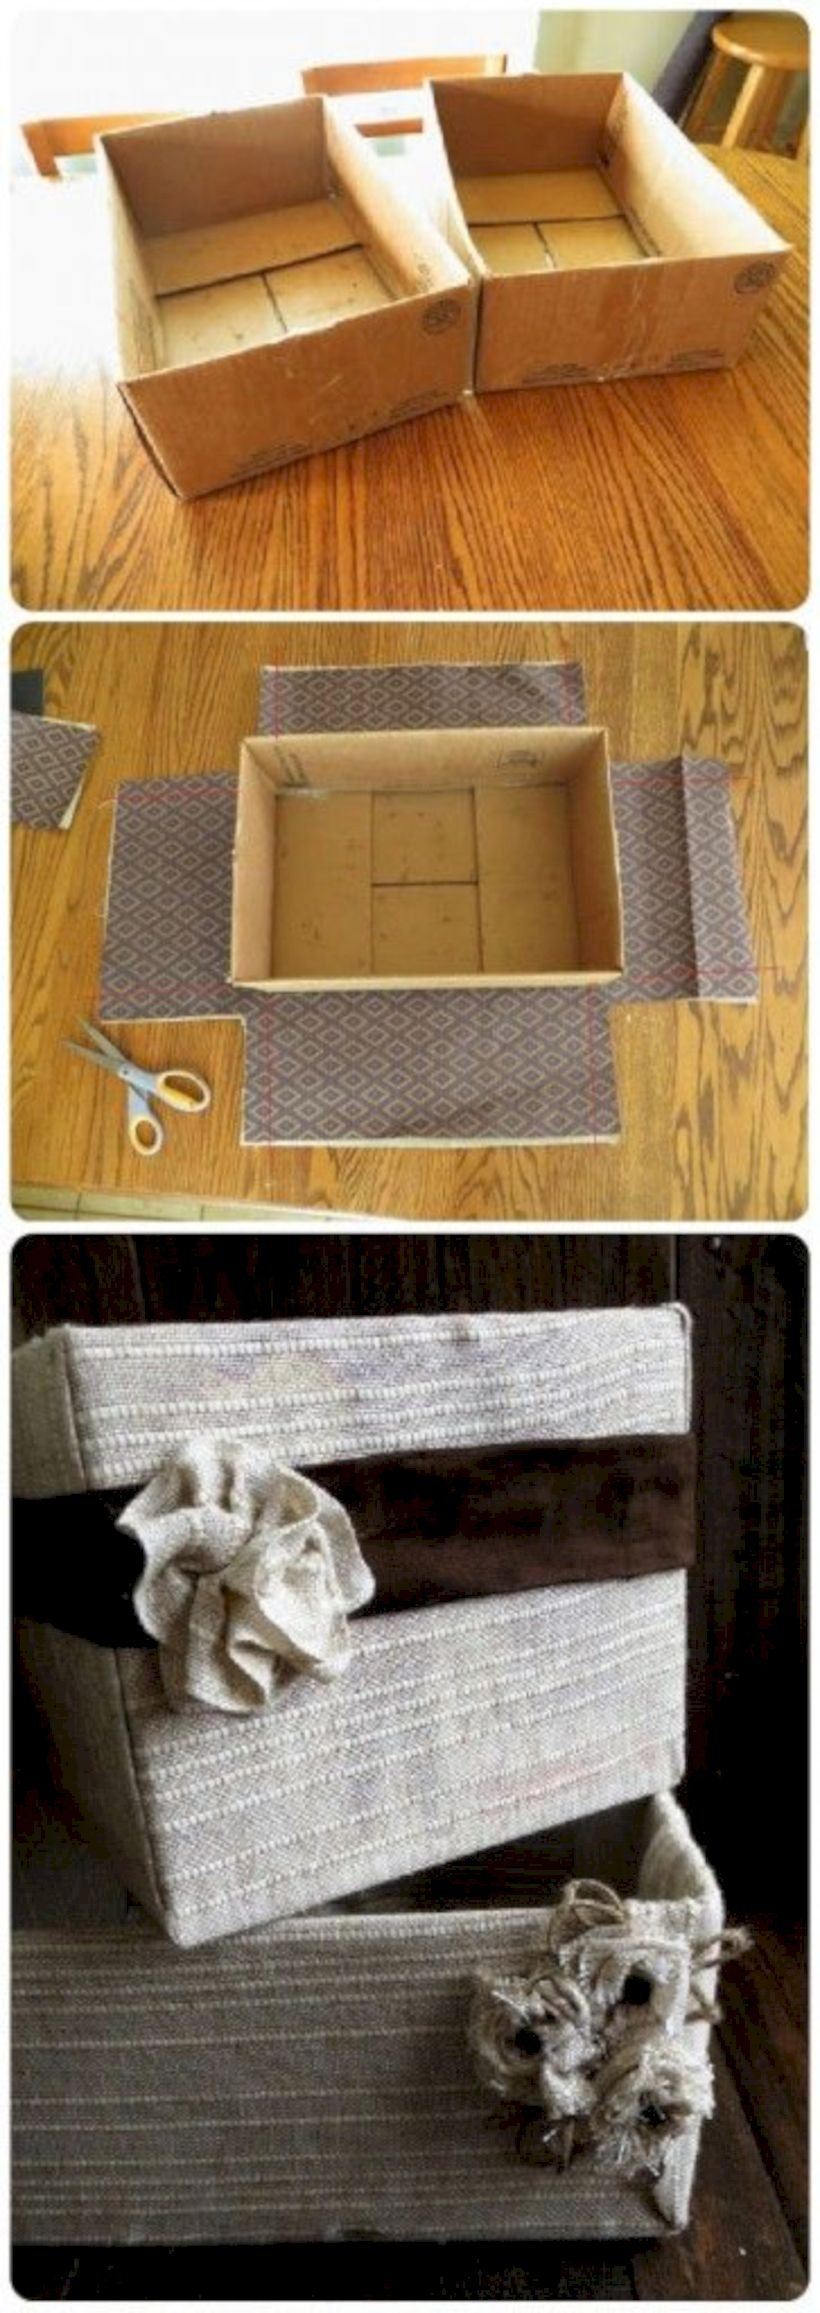 Diy bins boxes baskets